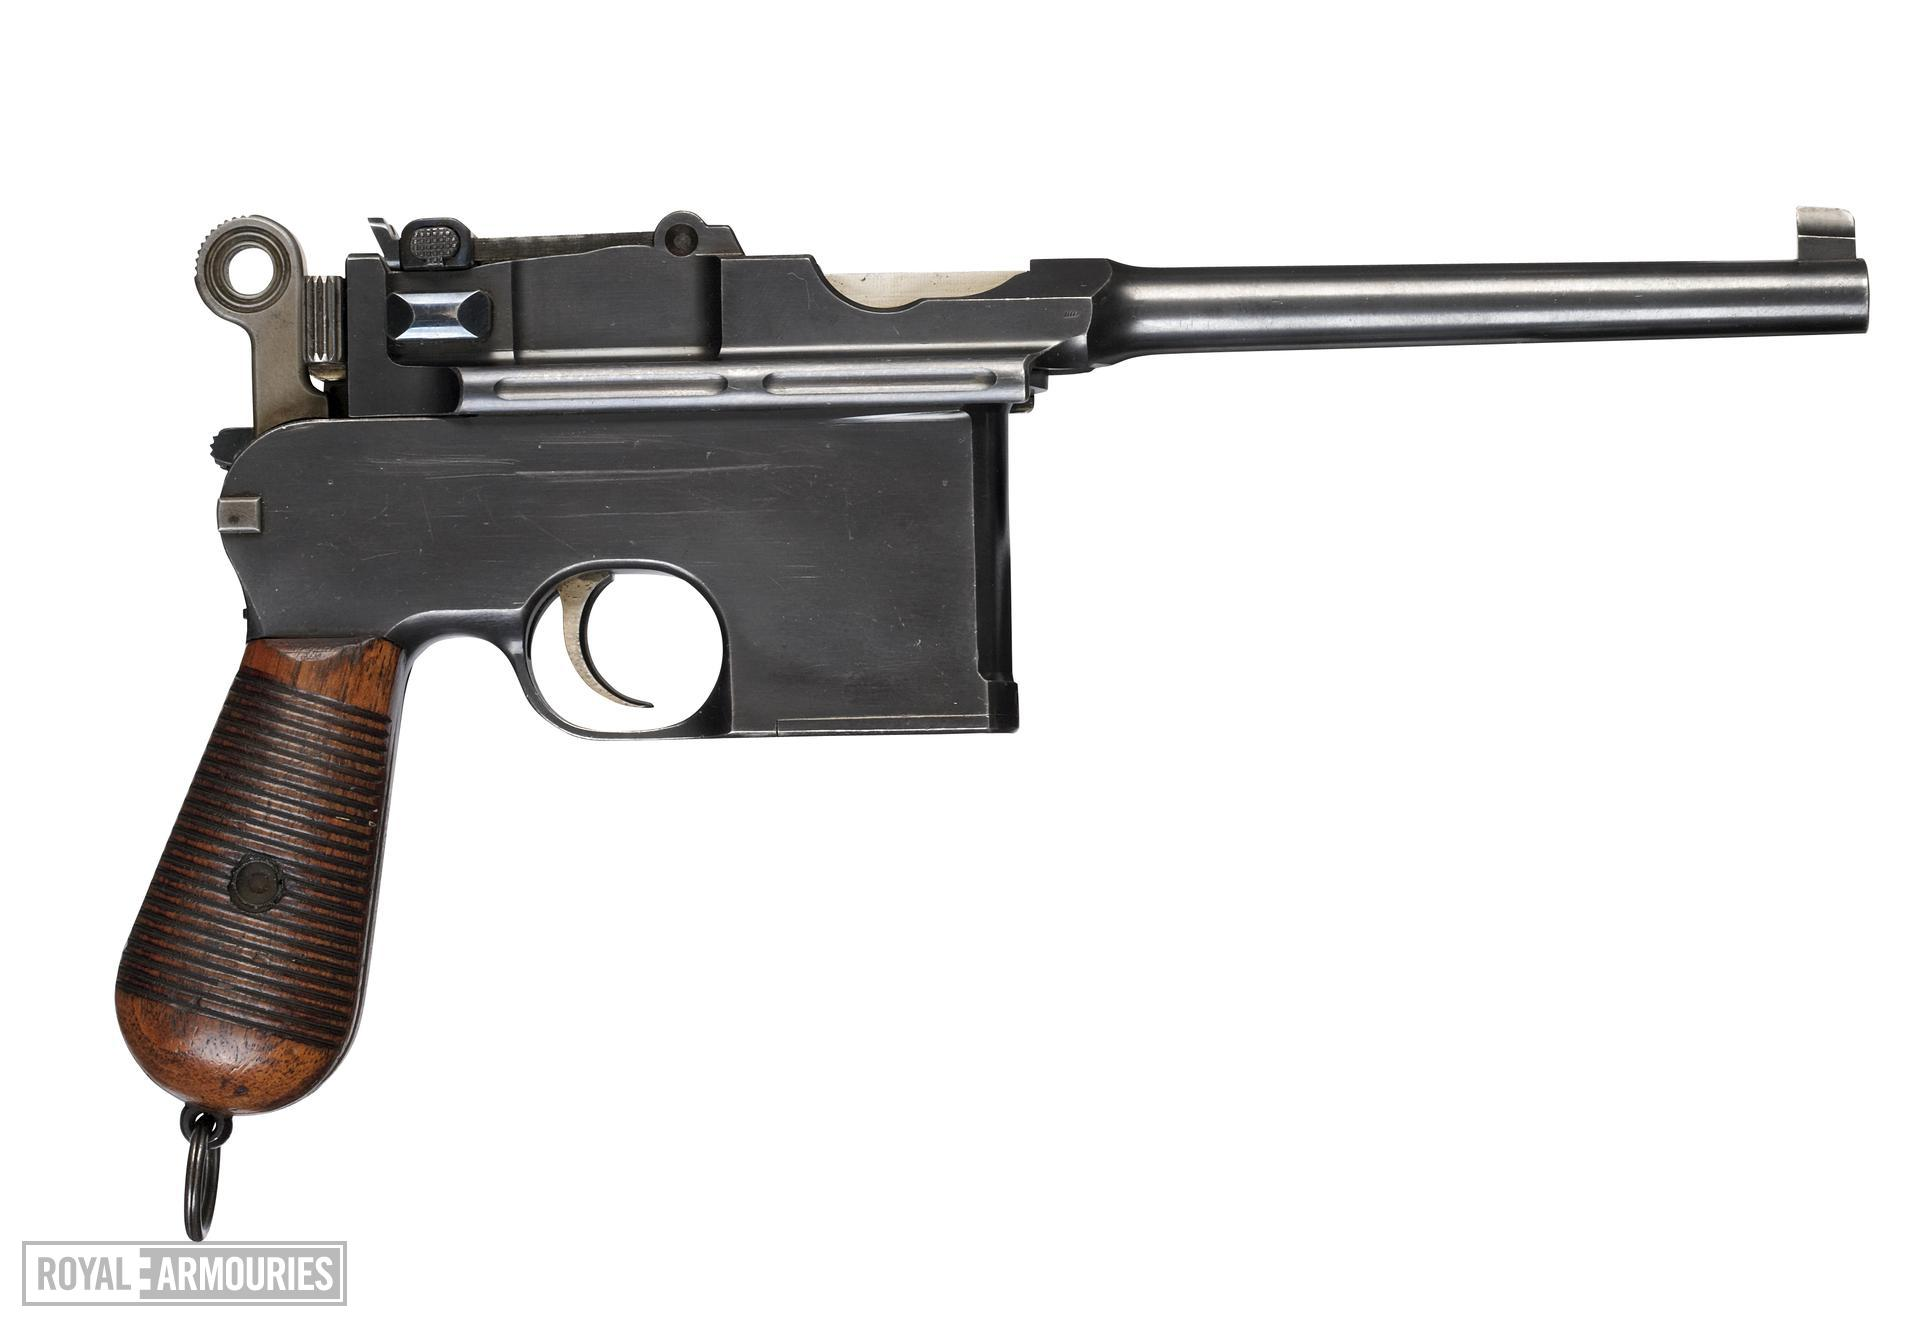 Centrefire self-loading pistol - Mauser C96 Centrefire self-loading pistol, Mauser C96, Germany, 1900.